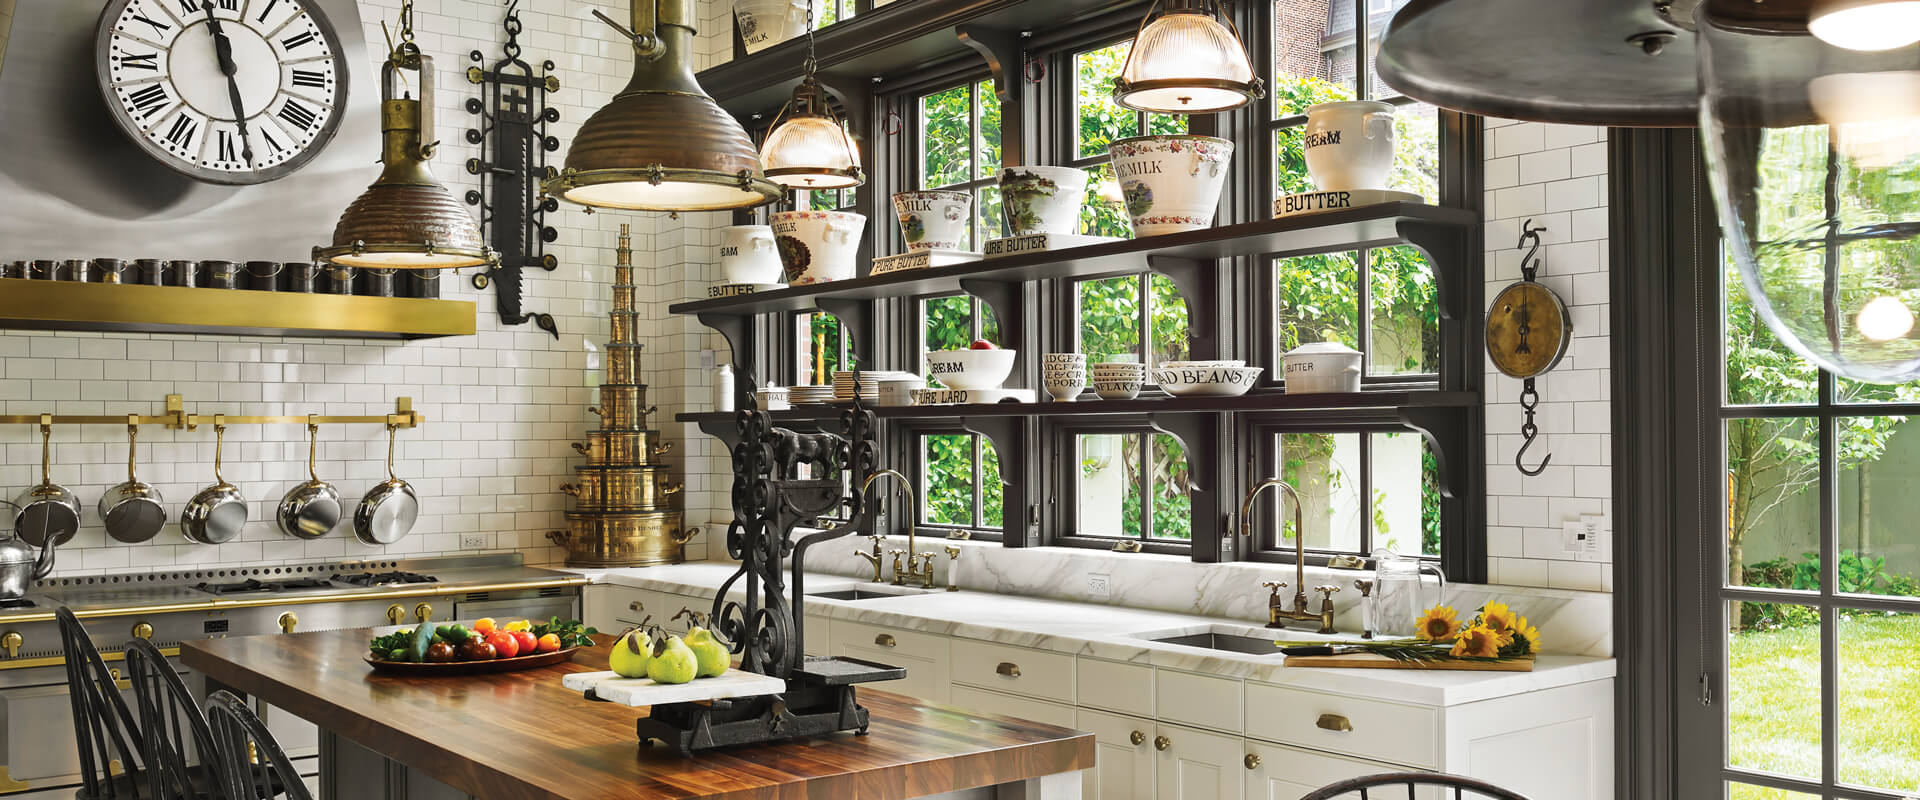 Many stationary picture and transom windows stacked over Ultra Series crank-out awning windows behind a kitchen counter.